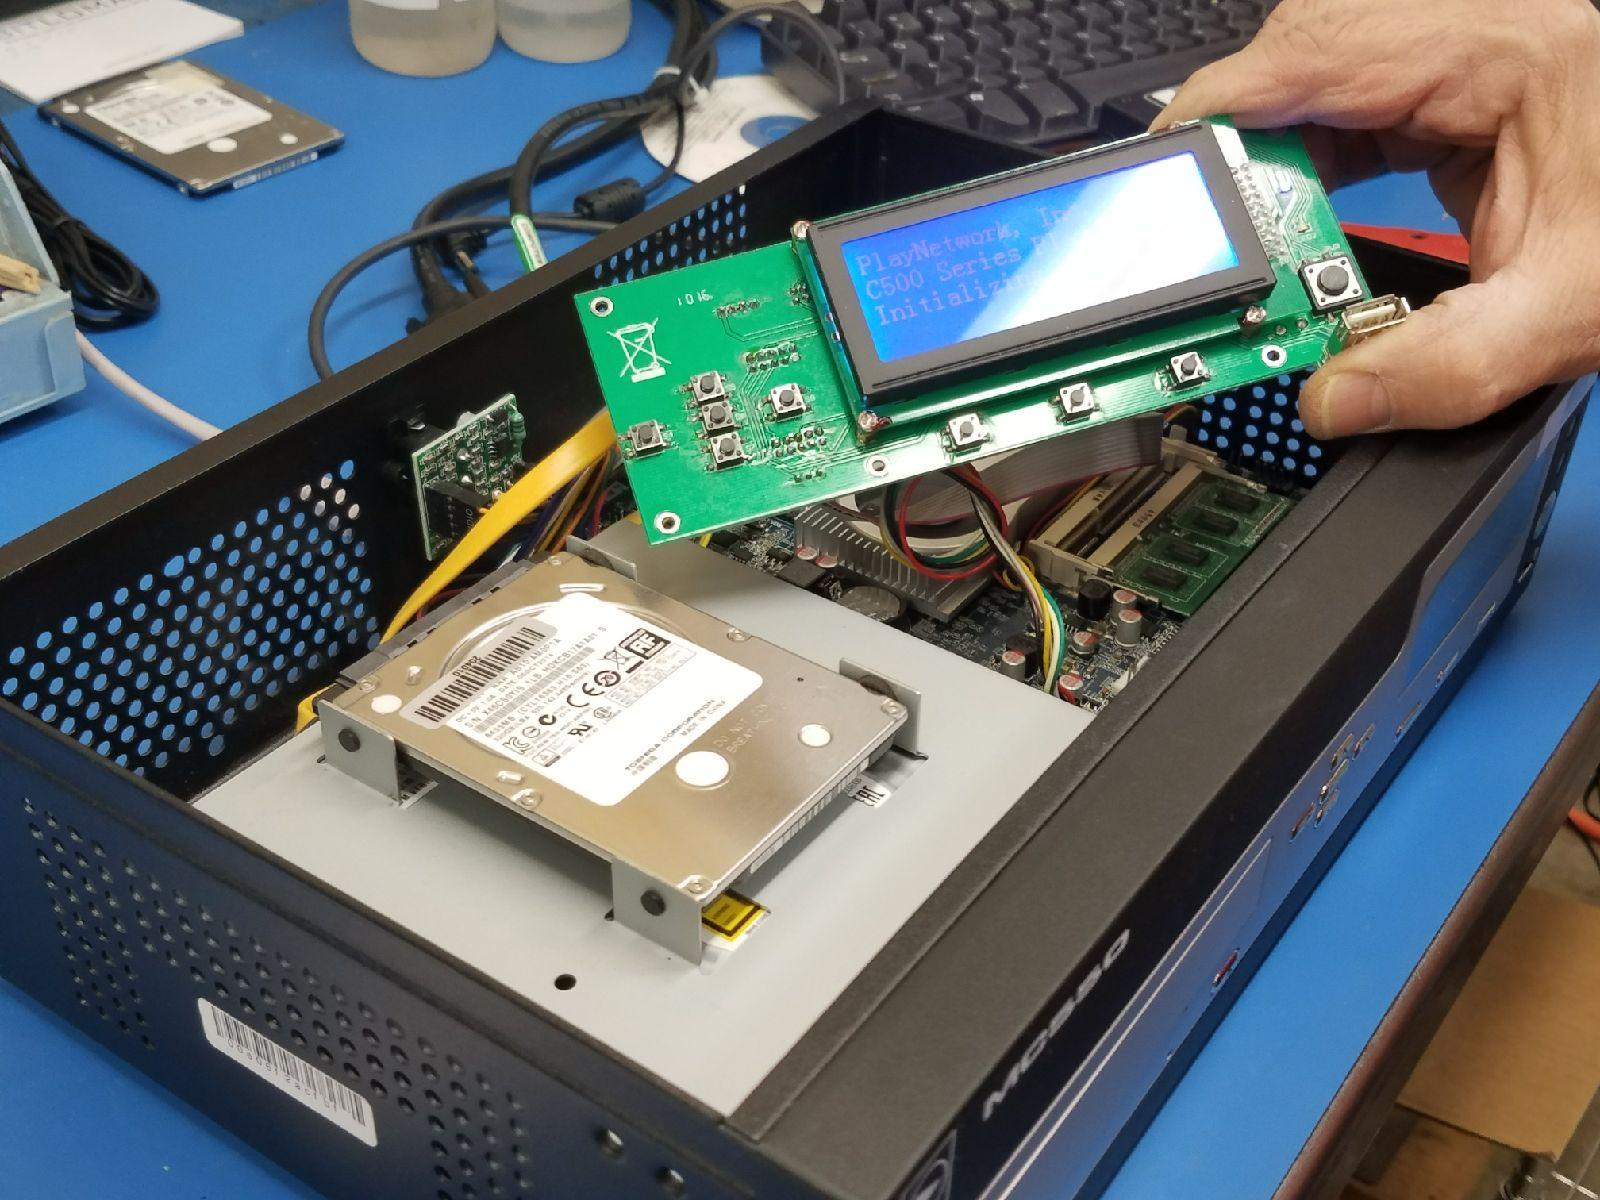 troubleshooting media player problems for digital kiosk repair services